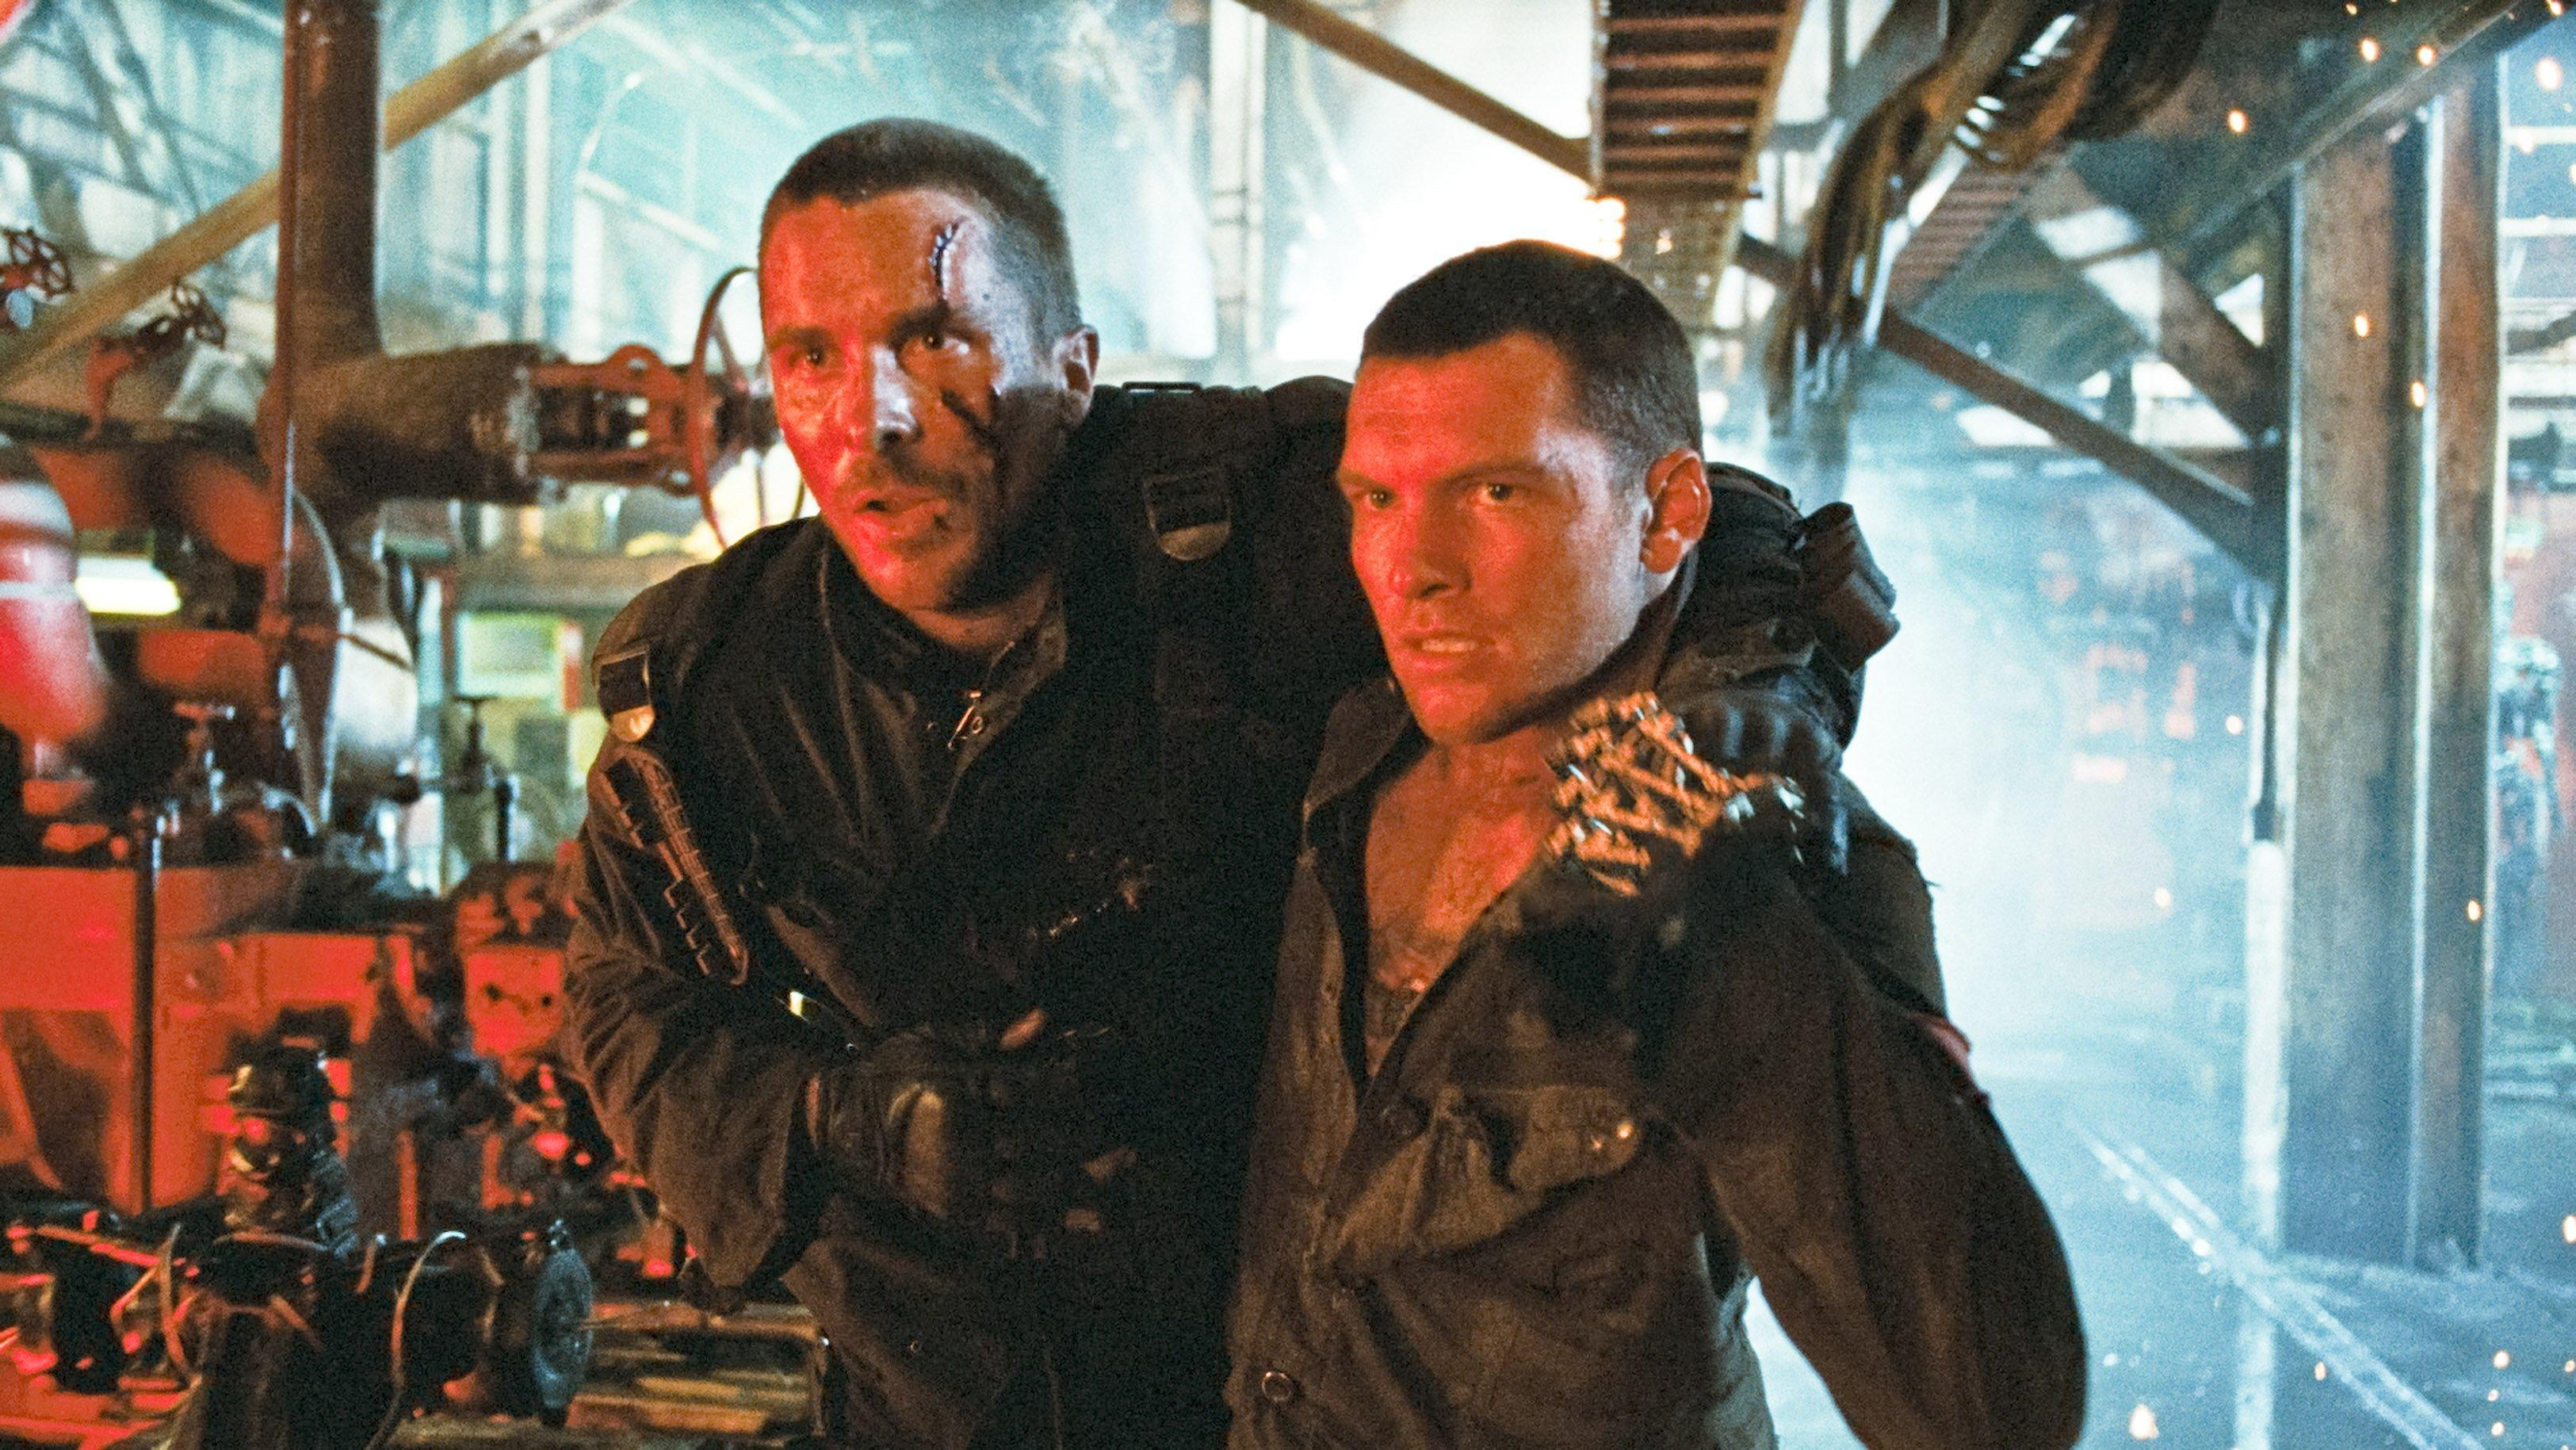 Terminator Salvation Review Terminator Salvation Is Just A Lot Of Noise The